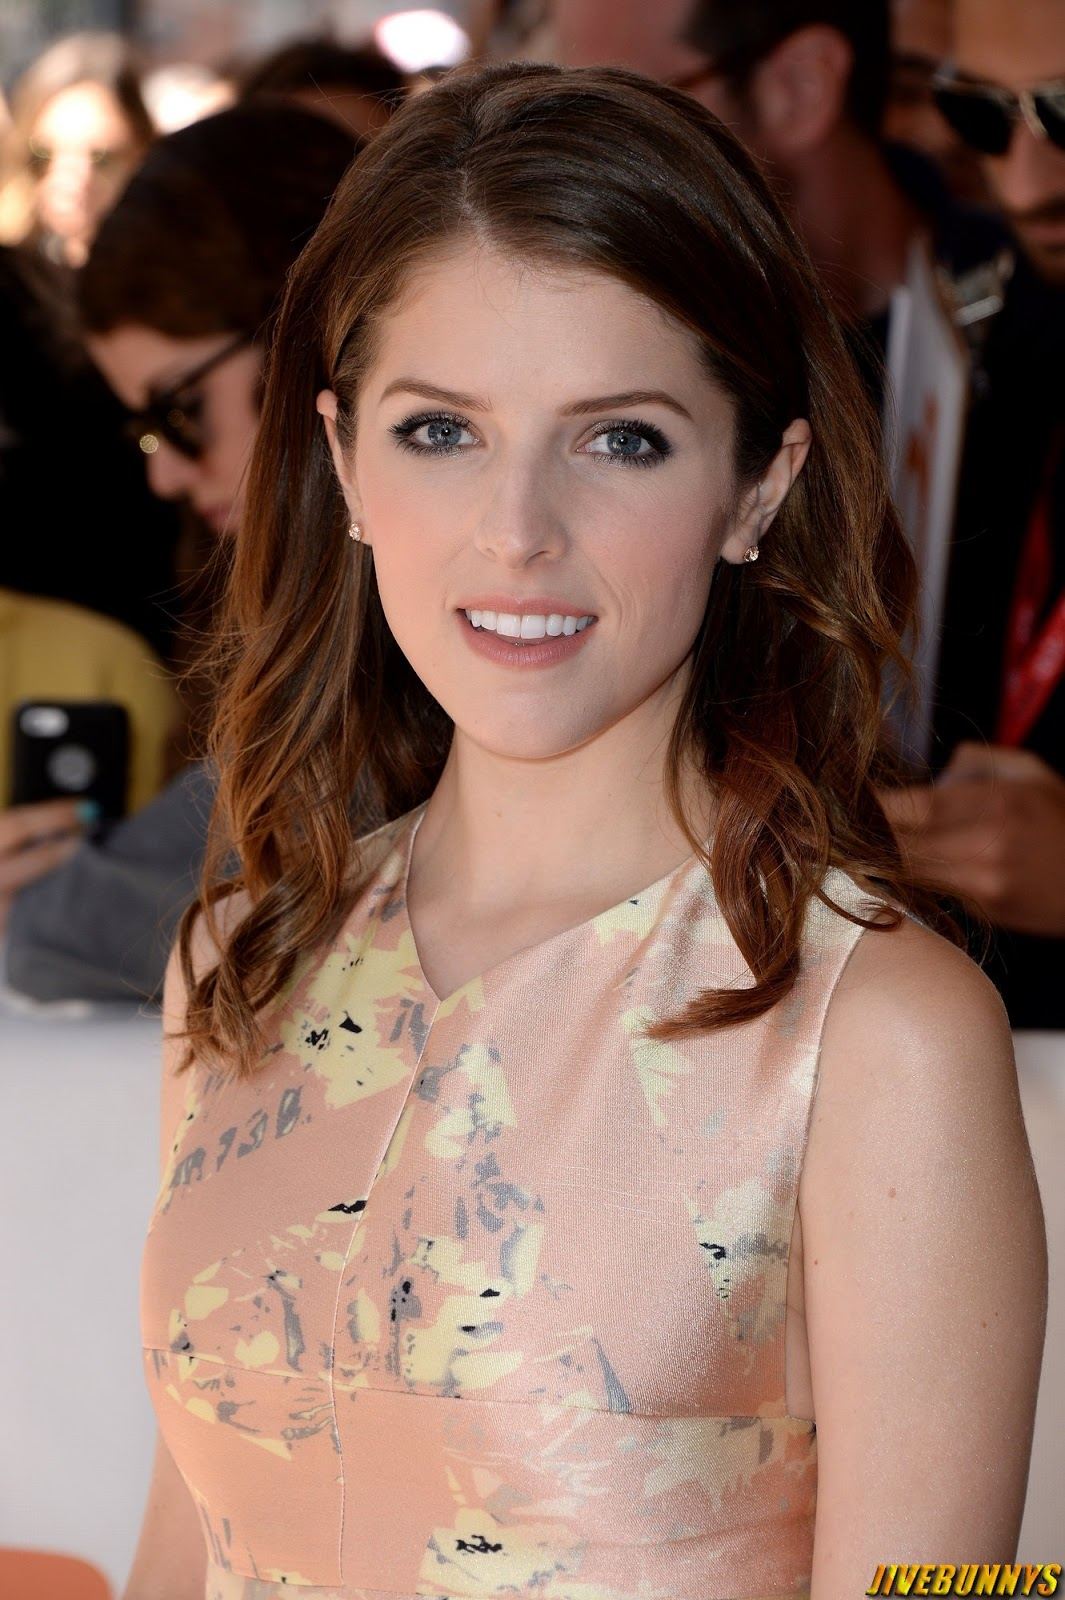 Anna Kendrick - Cake premiere at the Toronto Film Festival 09/08/14